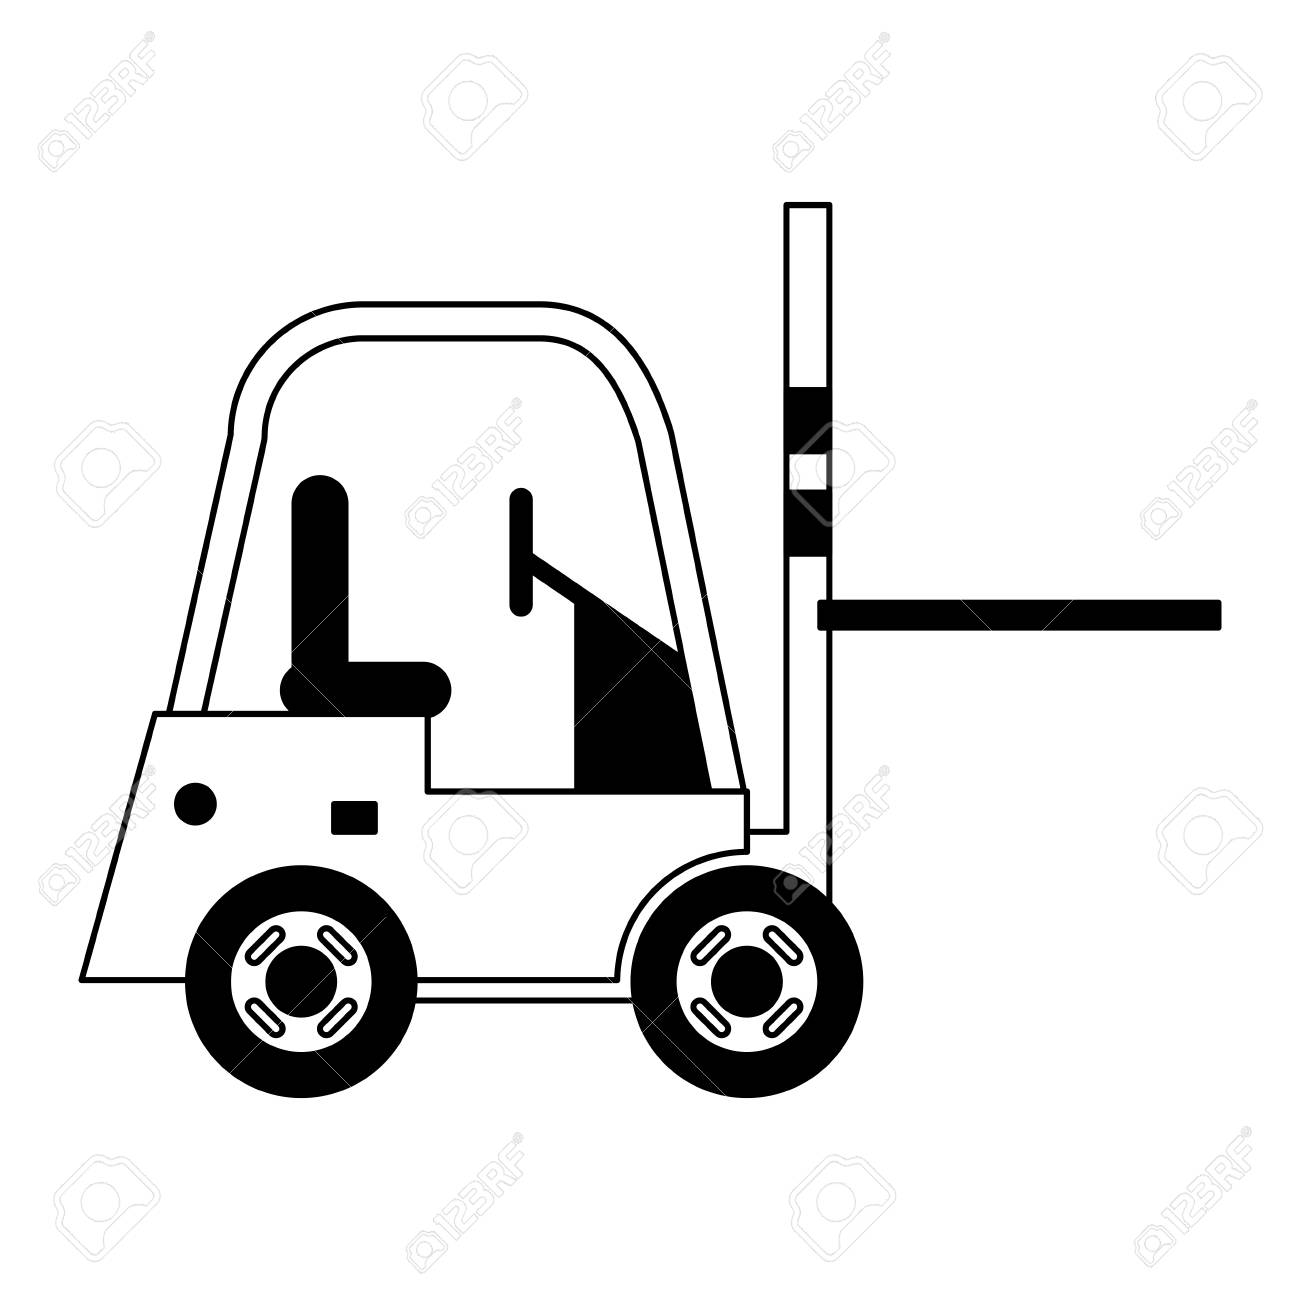 Forklift cargo vehicle sideview vector illustration graphic design - 120833881